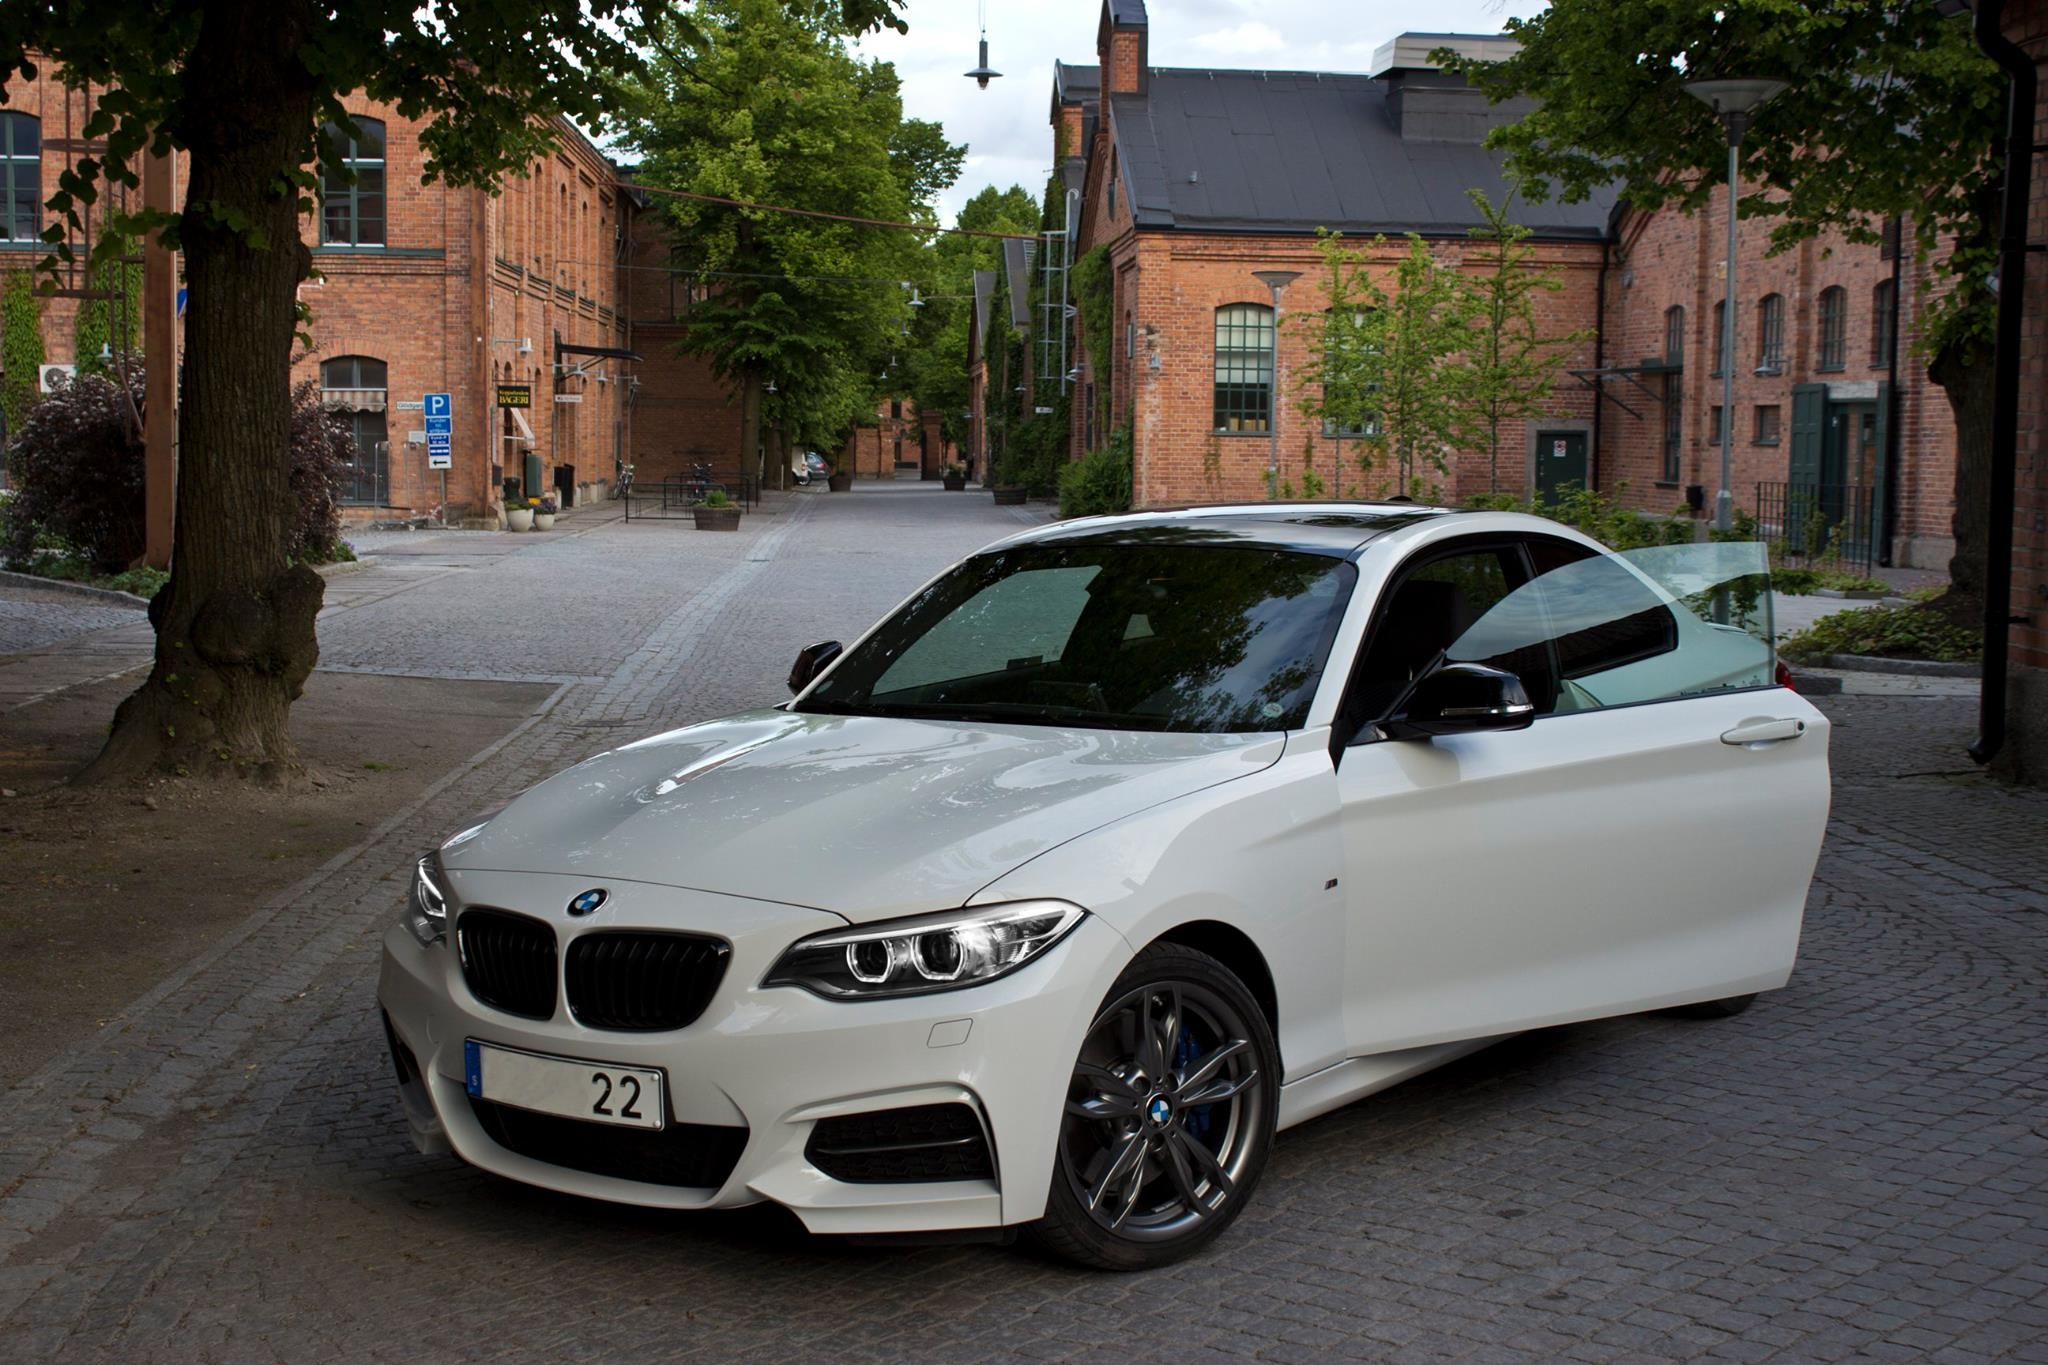 Alp White m235i slightly modded. Page 2 Bmw white, Bmw